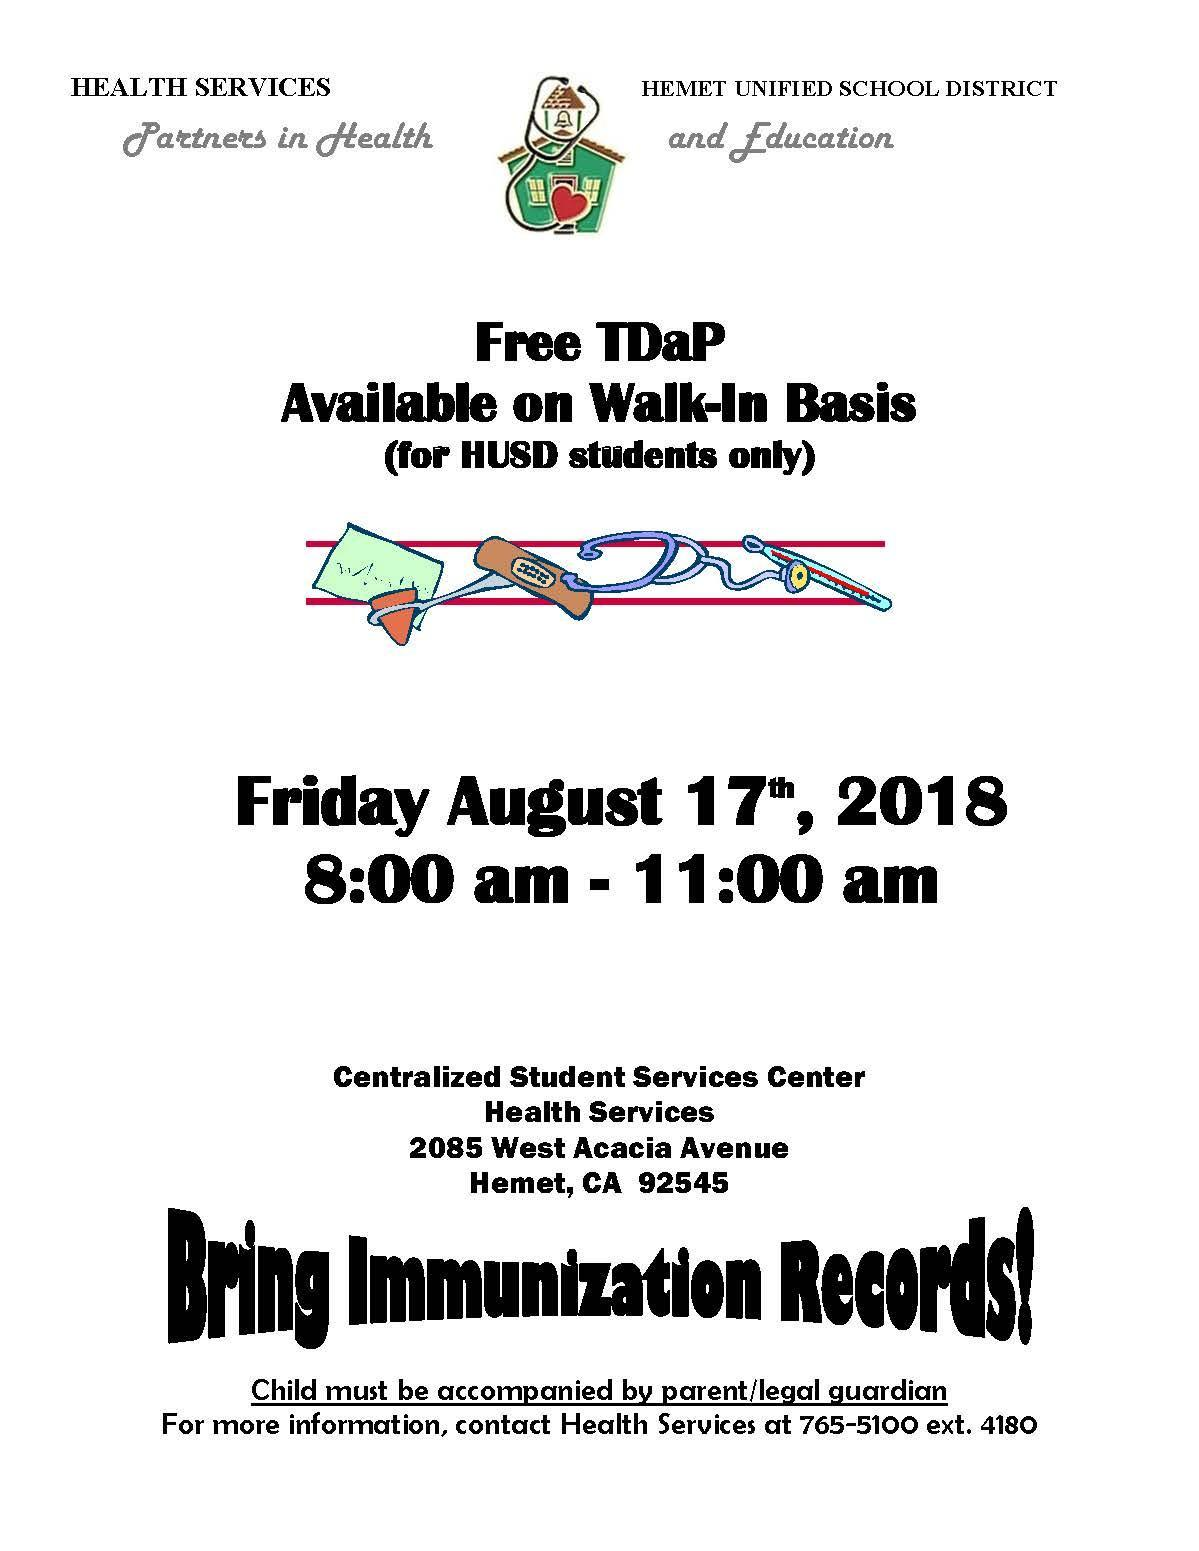 Free TDaP Available on Walk-In Basis (for HUSD students only) Friday August 17th, 2018 8:00 am - 11:00 am